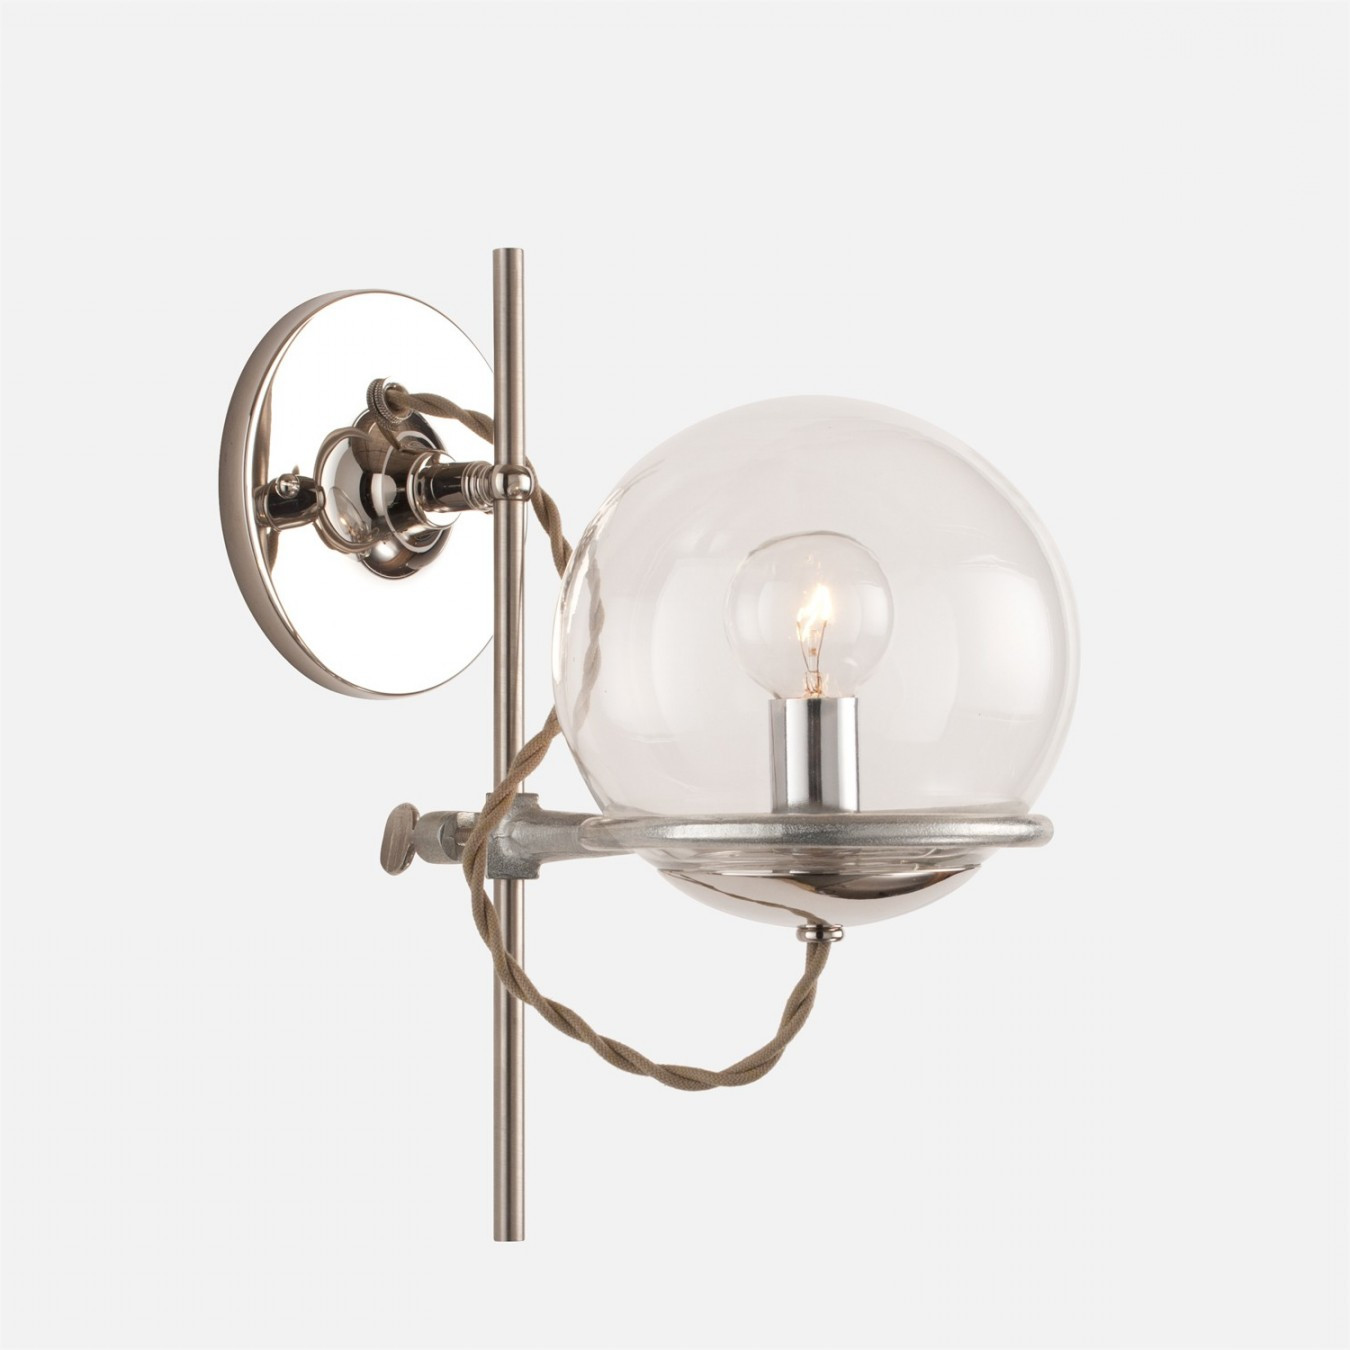 macy's vases decorative accents sale of fresh globe wall sconce pictures home decor with regard to orbit sconce